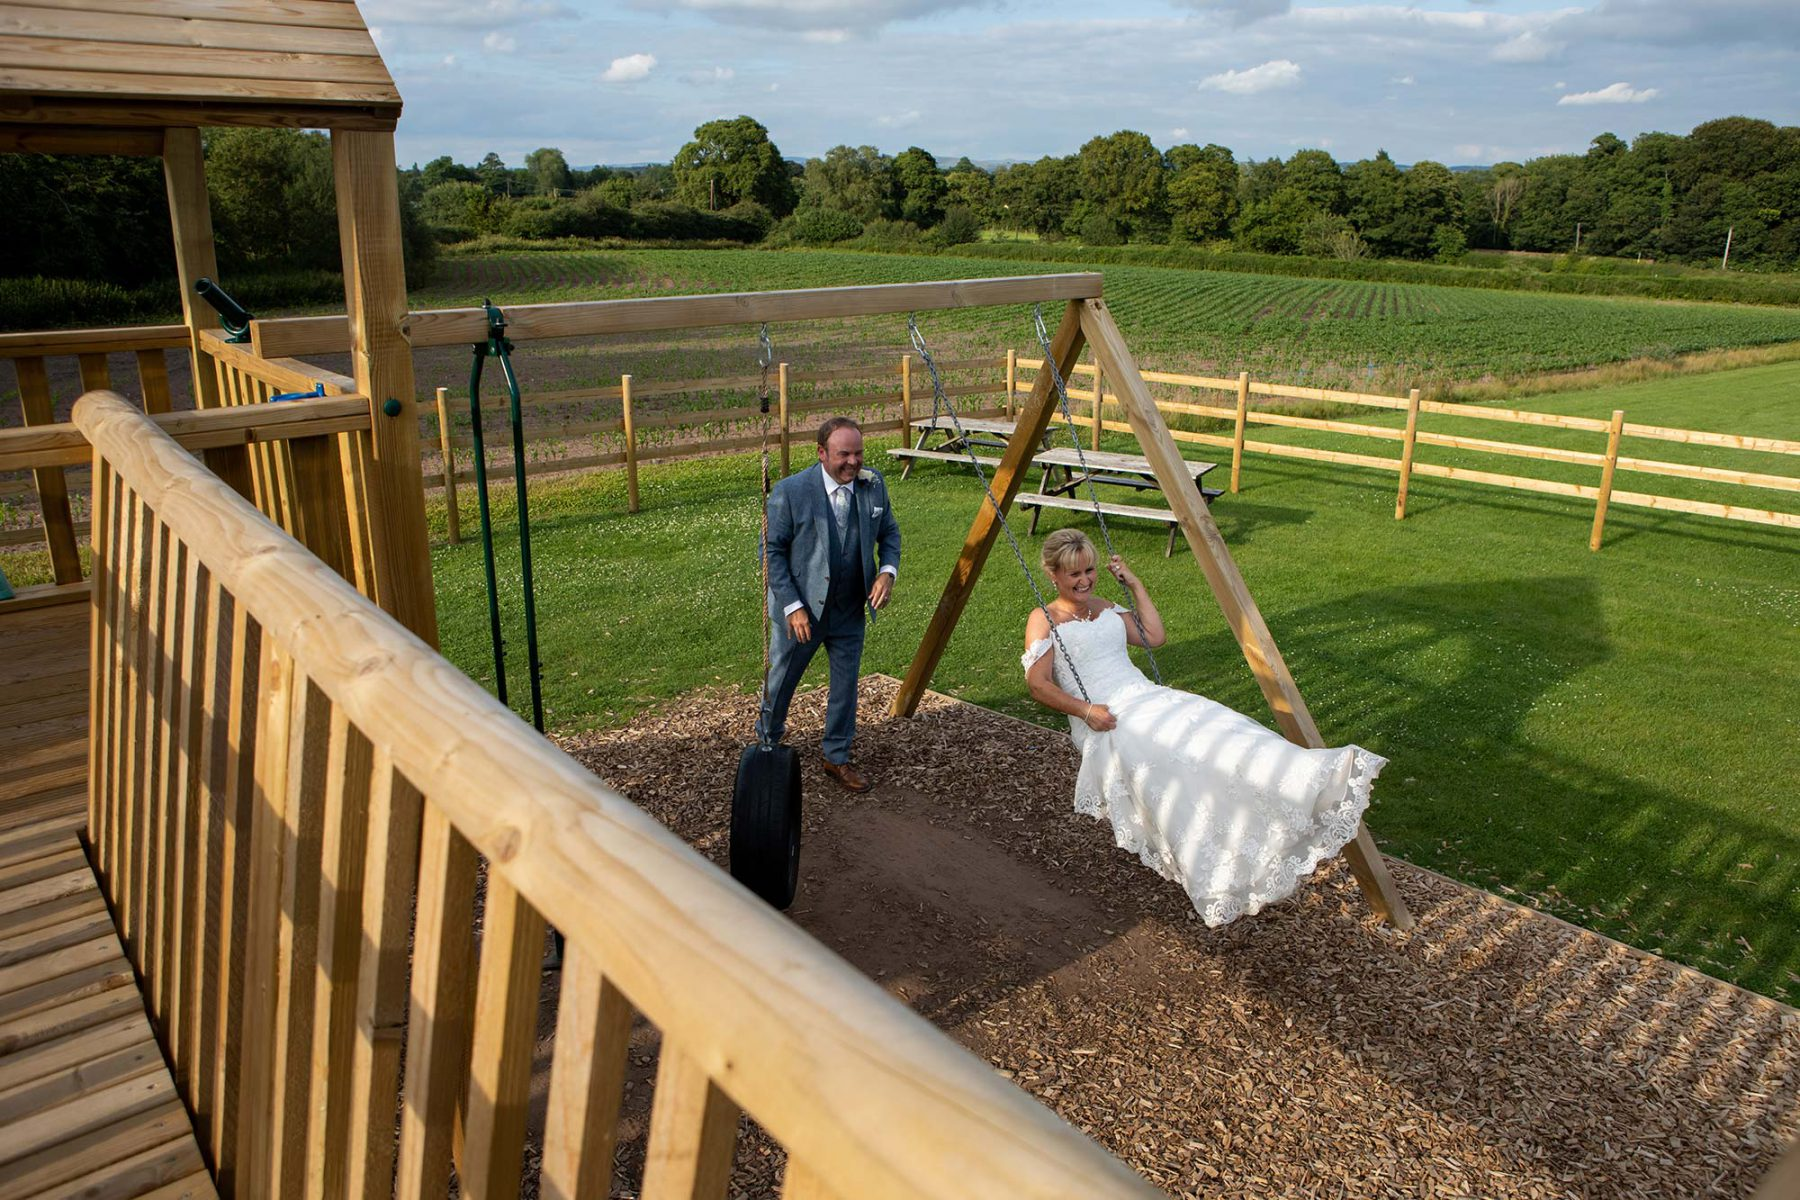 the groom pushes his bride on a swing